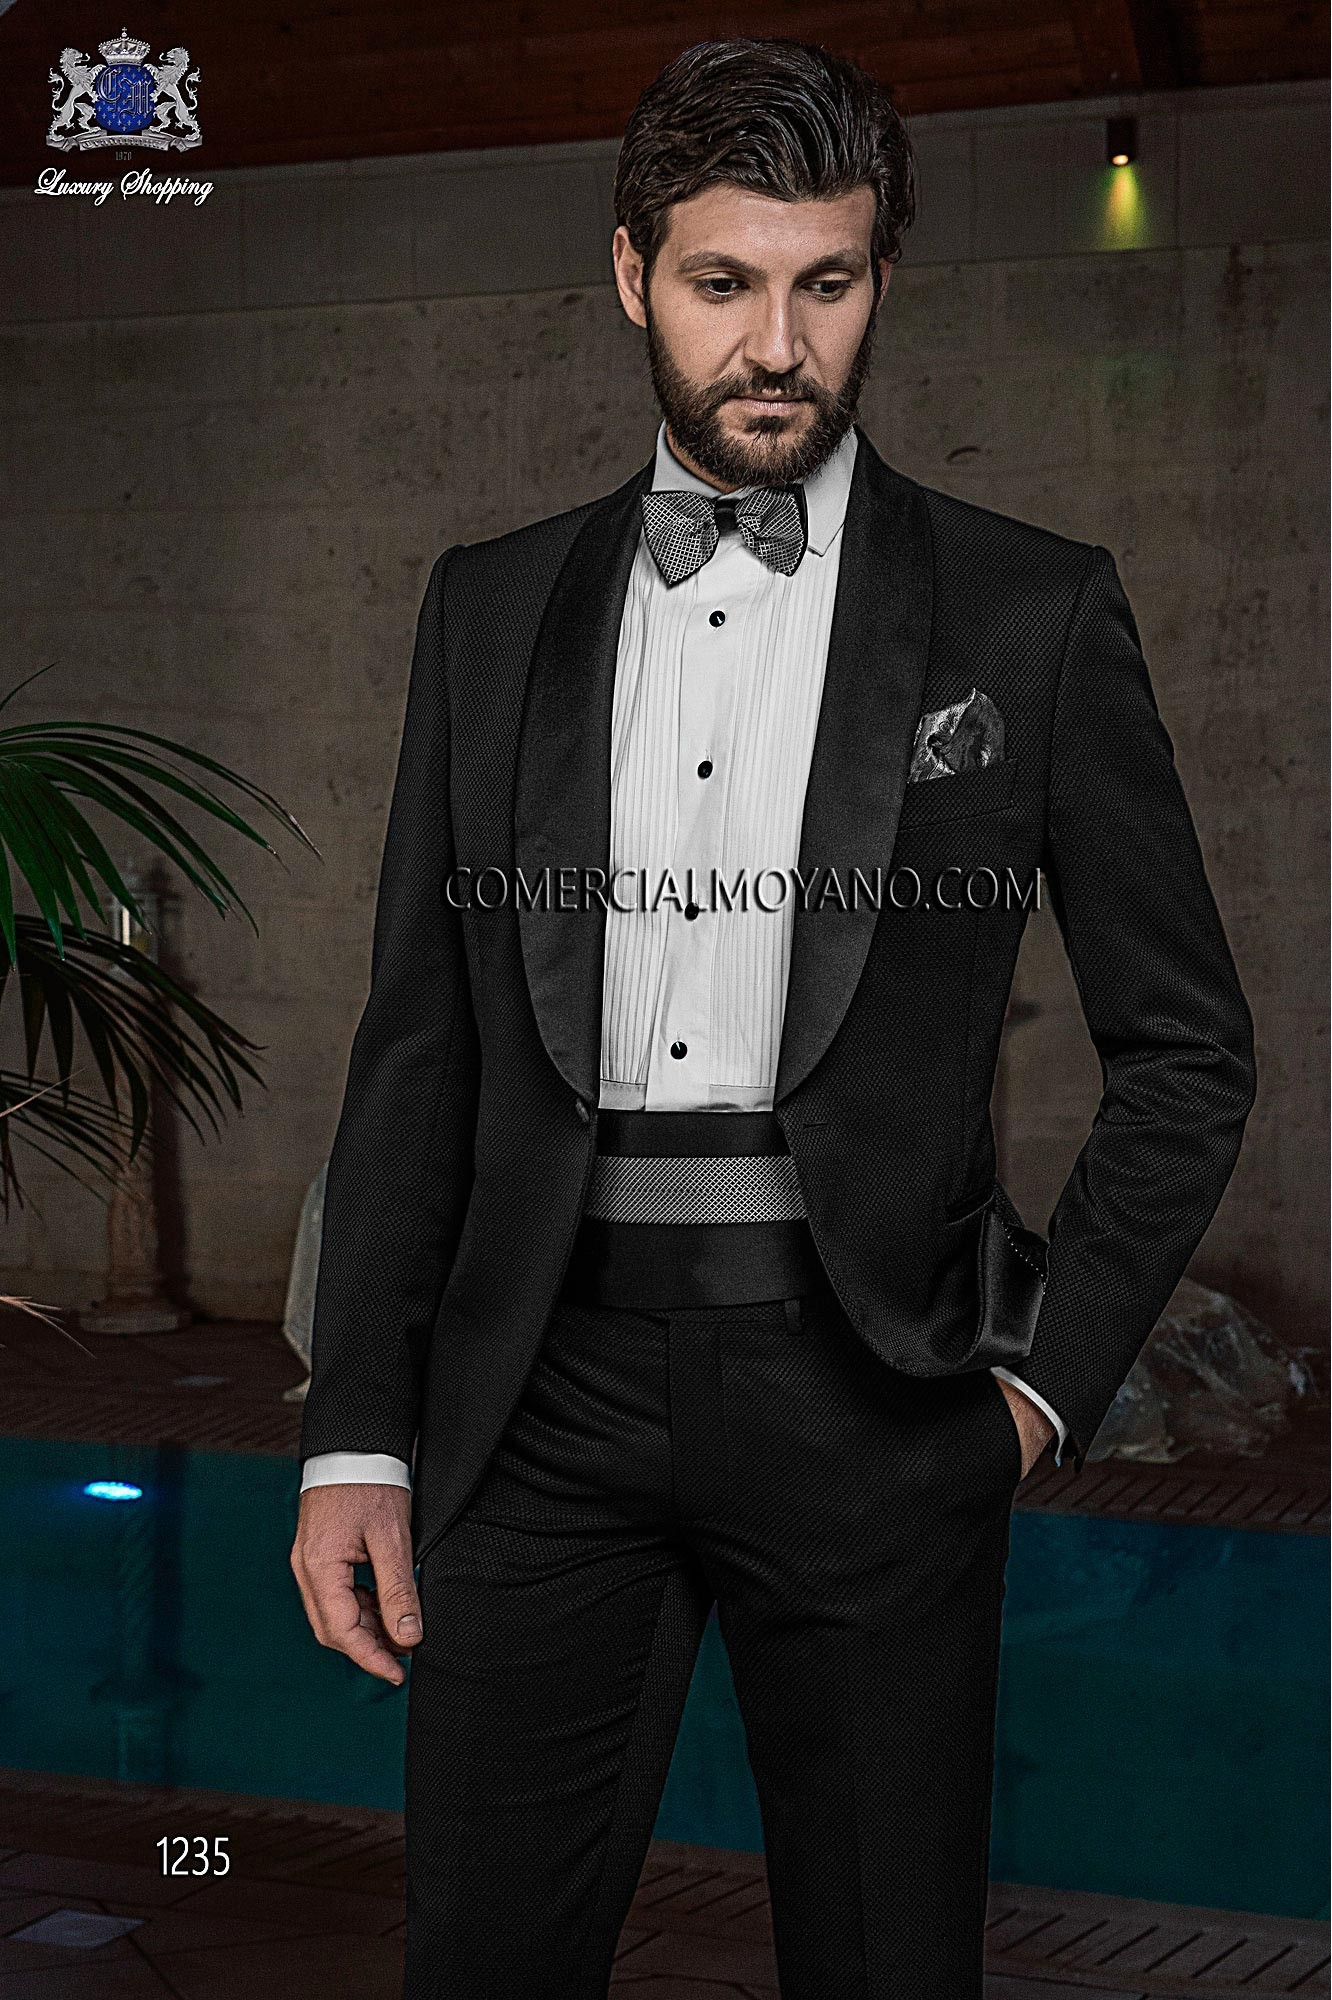 Black Tie Black men wedding suit model 1235 Ottavio Nuccio Gala